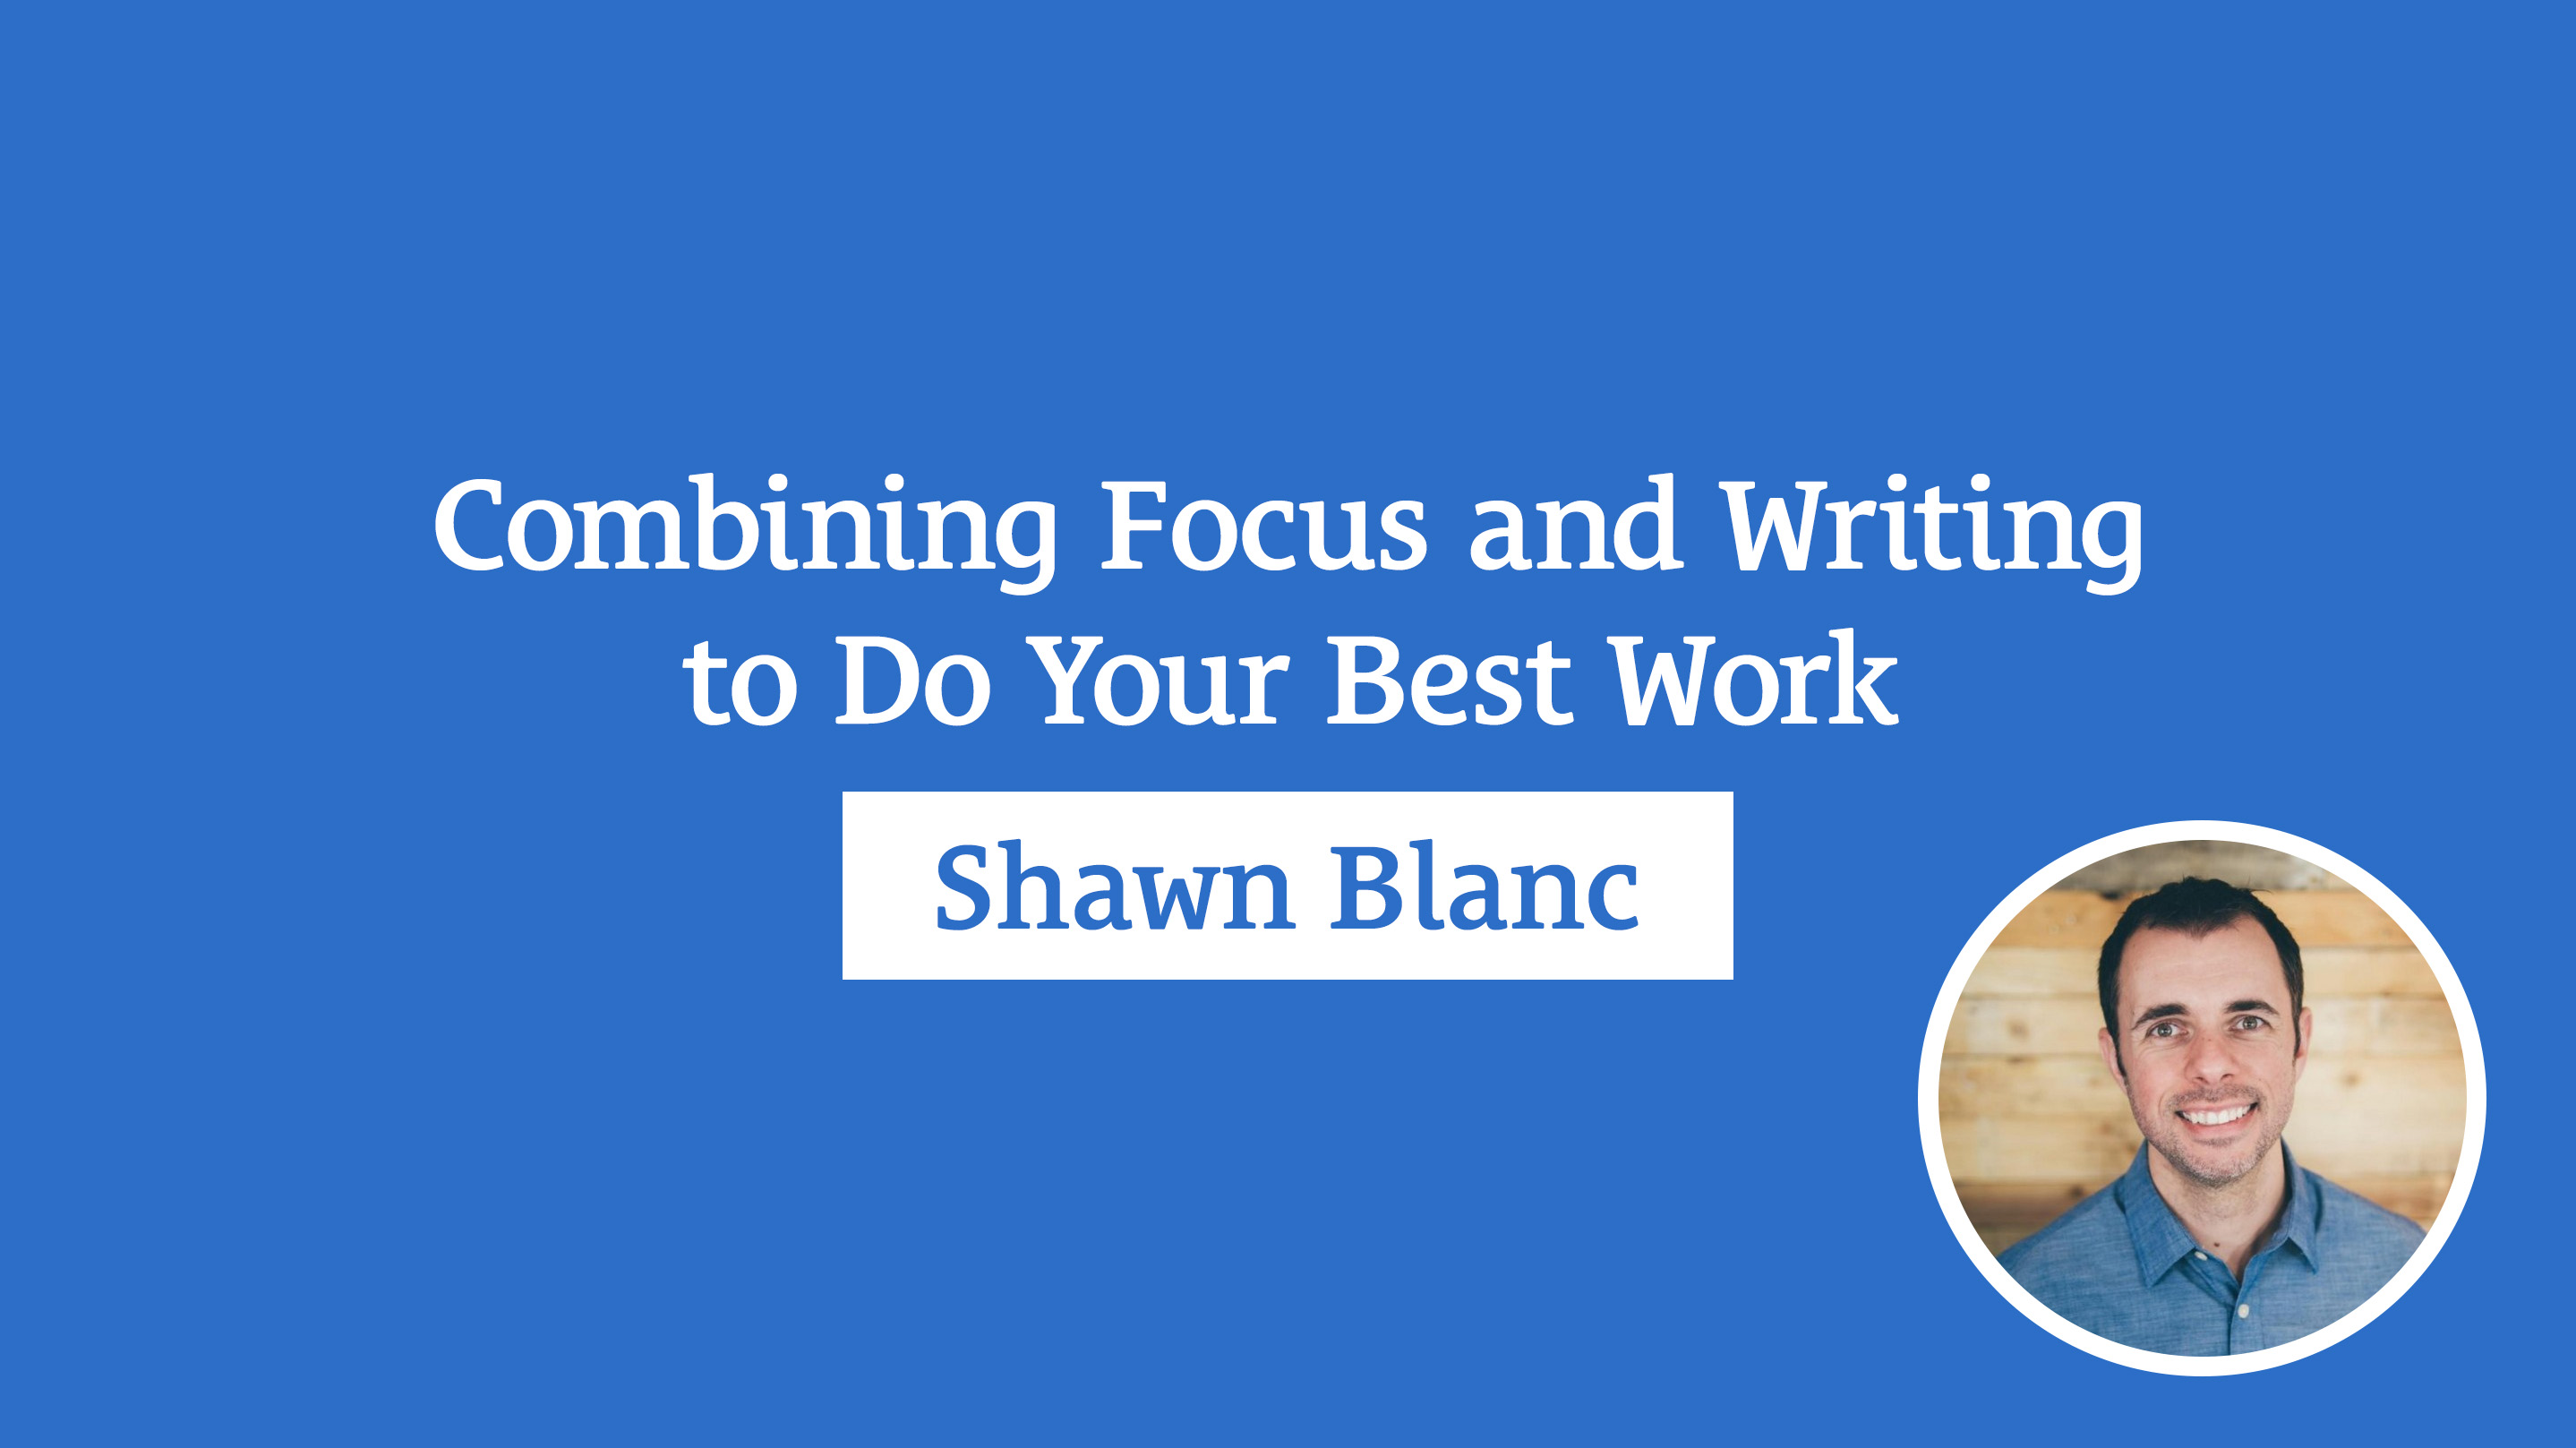 Combining Focus and Writing to Do Your Best Work